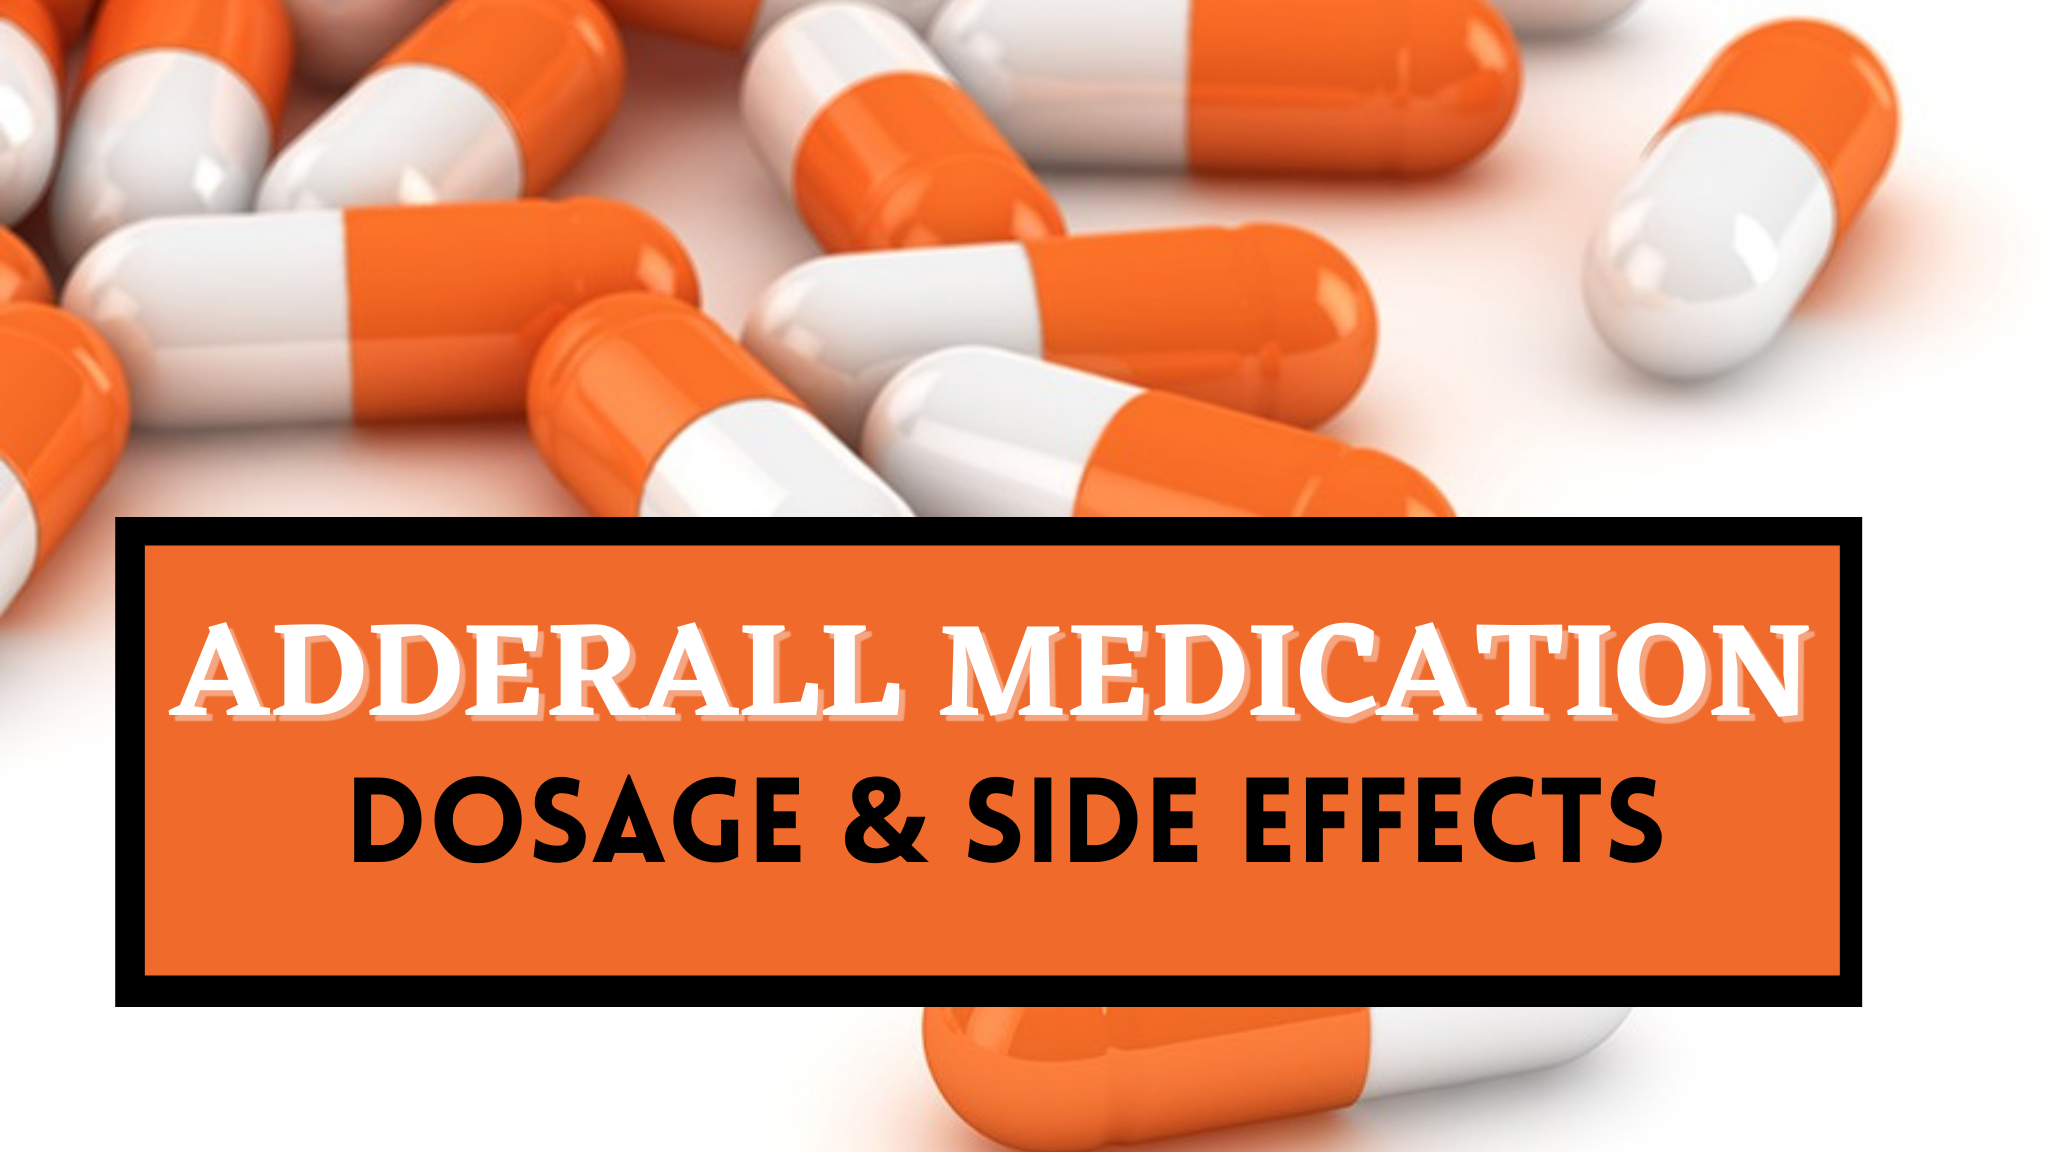 Adderall Medication: Dosage & Side Effects